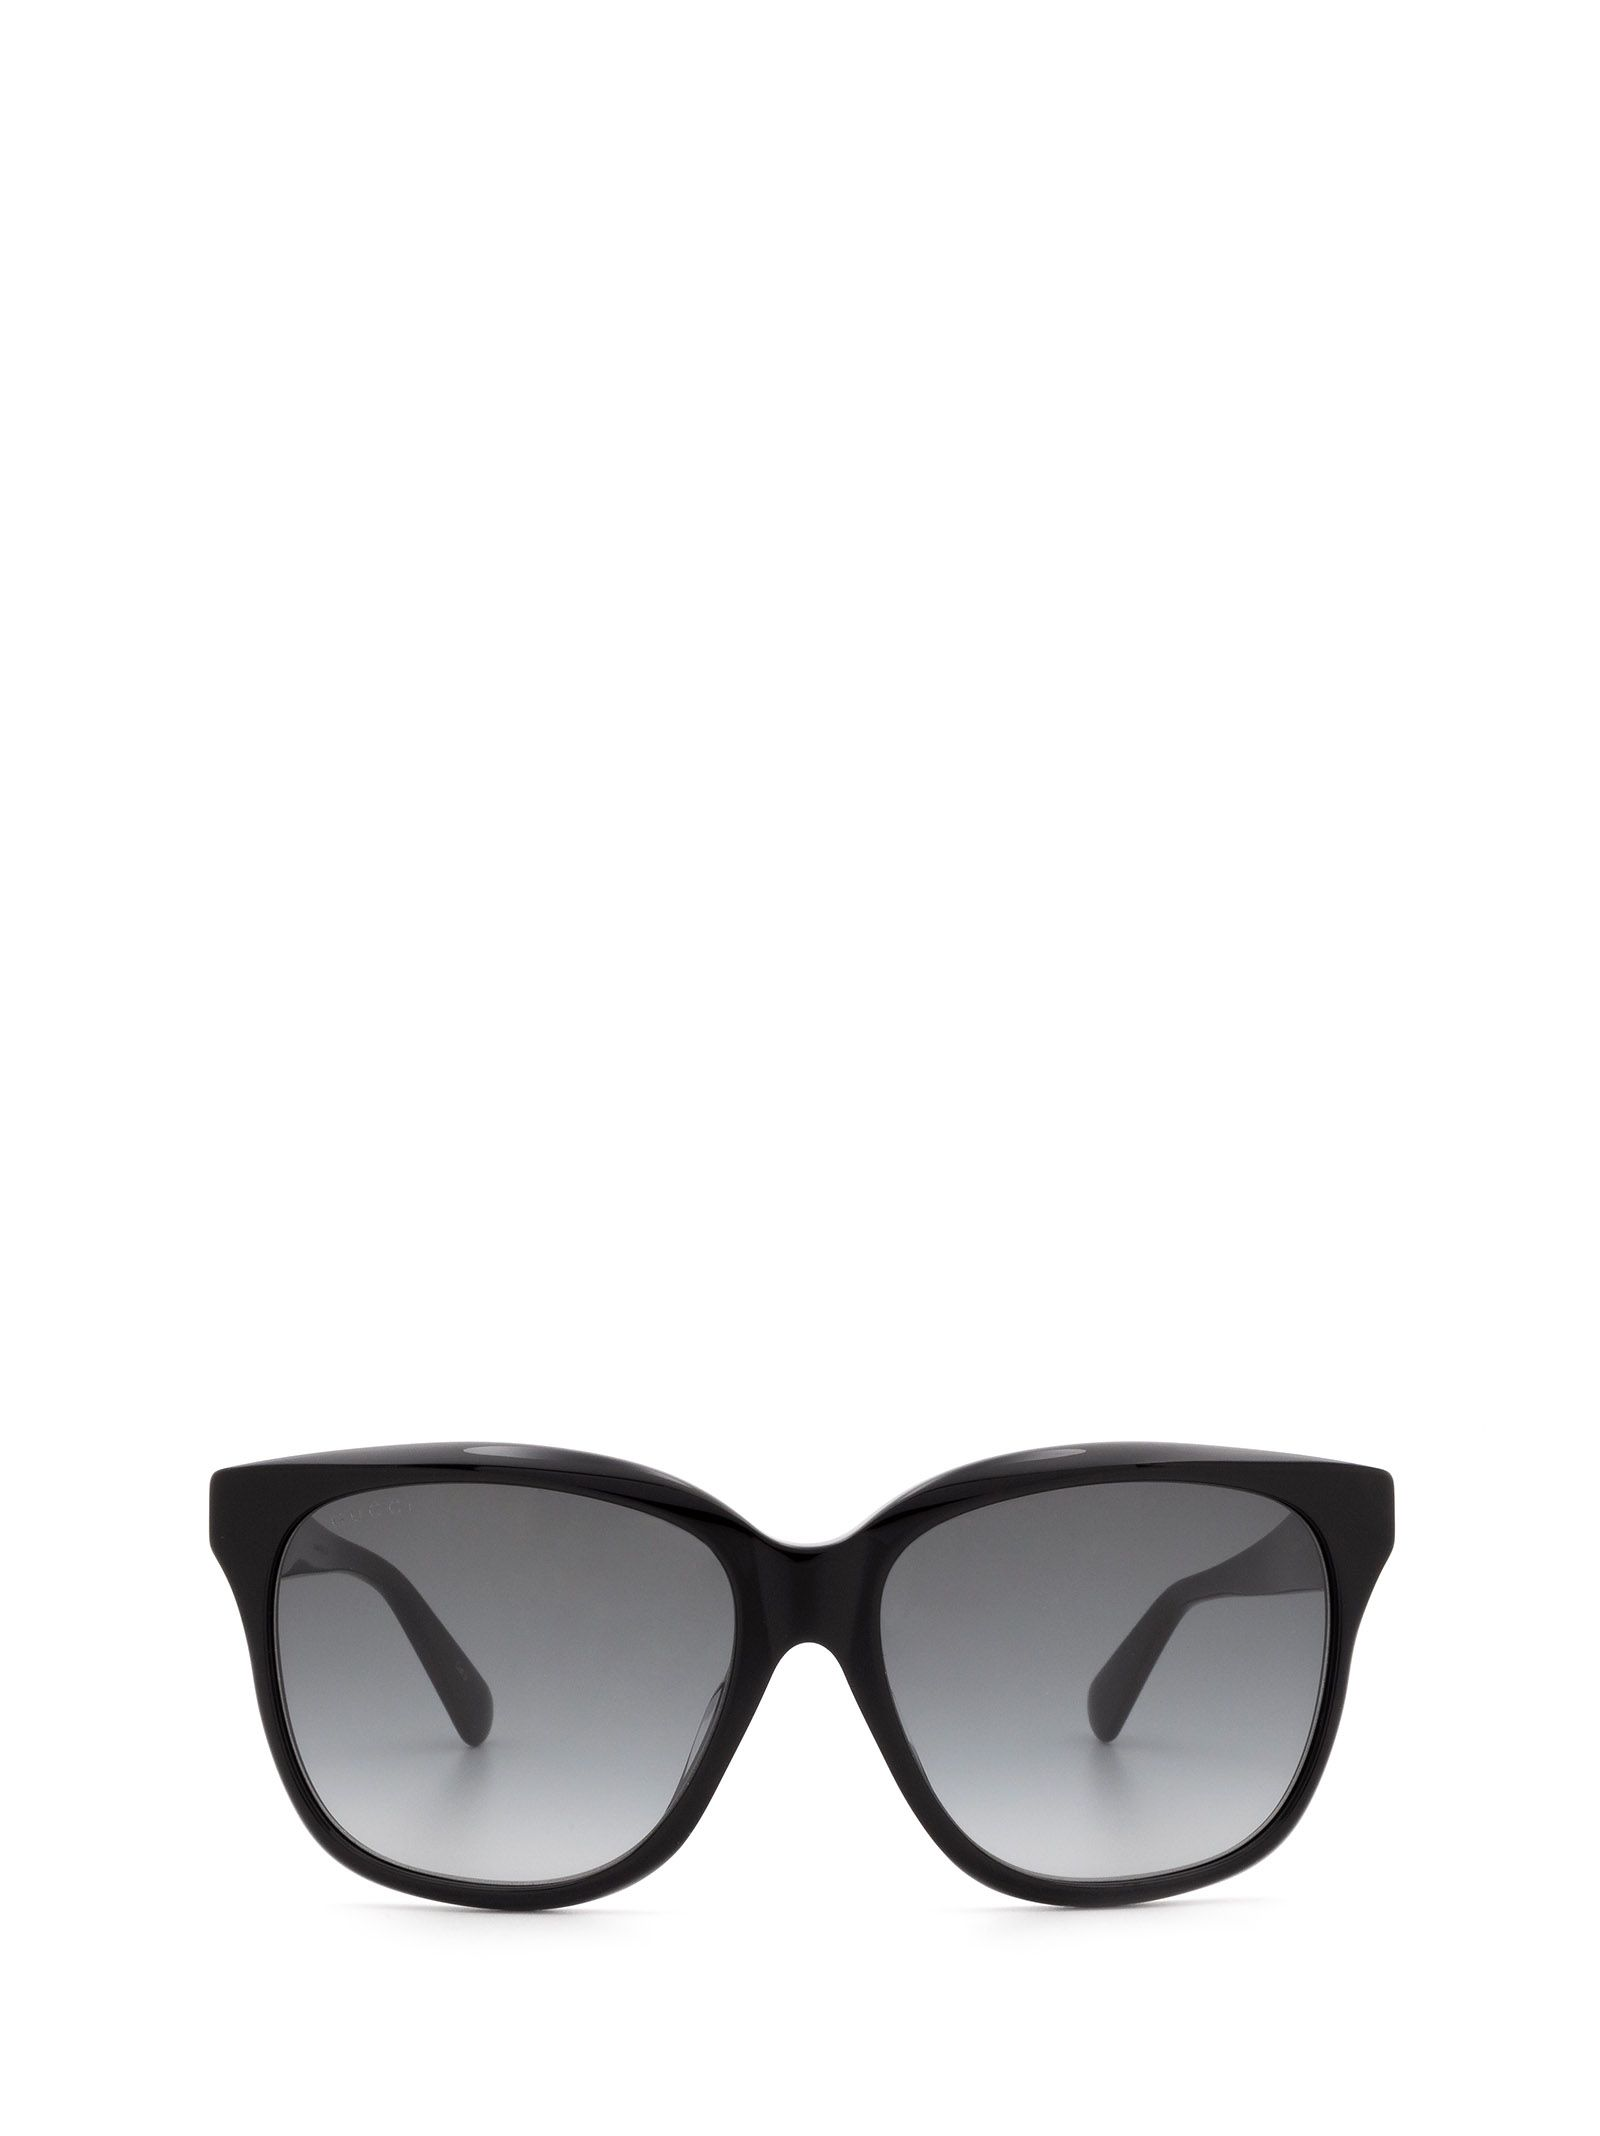 Gucci Sunglasses GUCCI WOMEN'S SILVER METAL SUNGLASSES